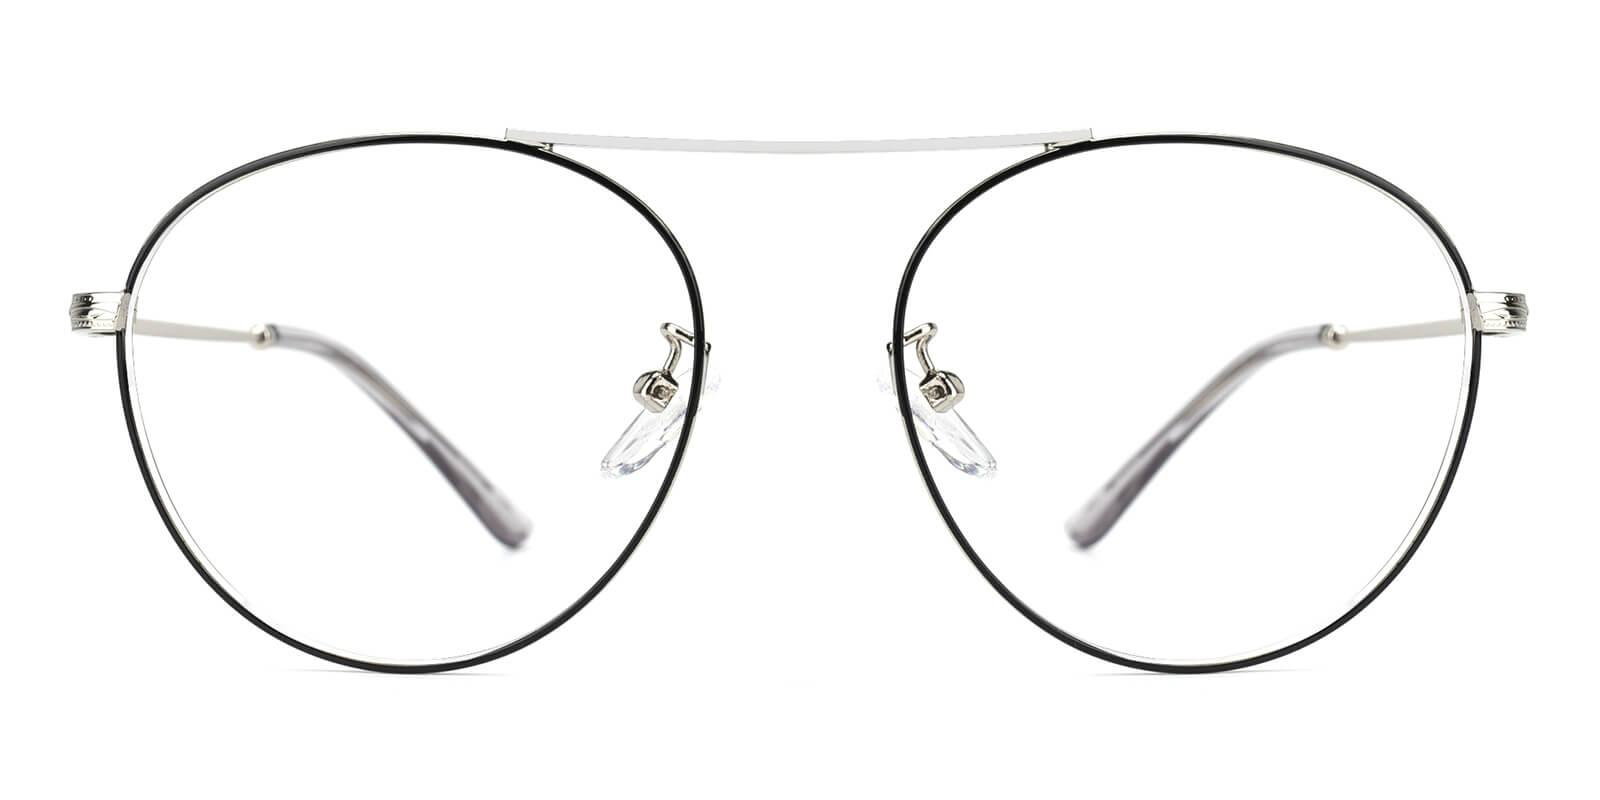 Fleybean-Silver-Aviator-Metal-Eyeglasses-detail